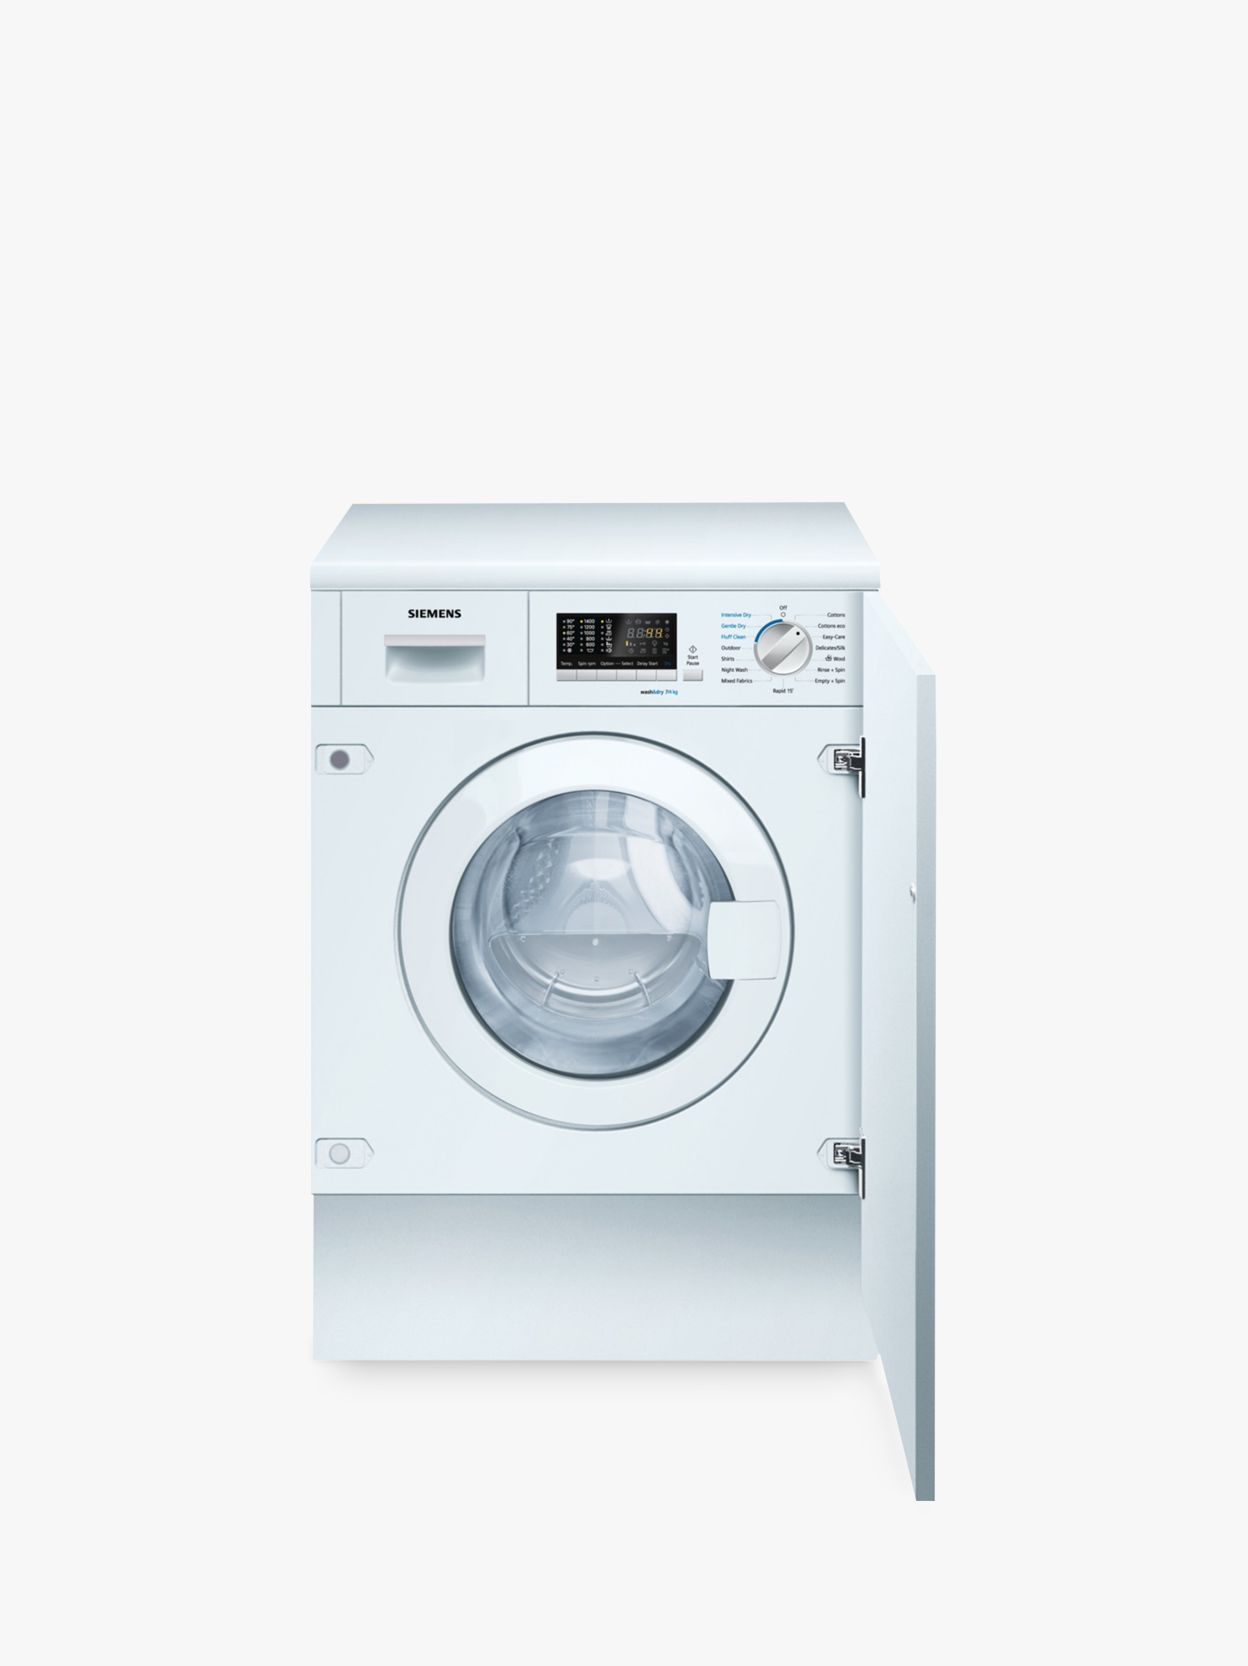 Siemens Siemens iQ500 WK14D541GB Integrated Washer Dryer, 7kg Wash/4kg Dry Load, B Energy Rating, 1400rpm Spin